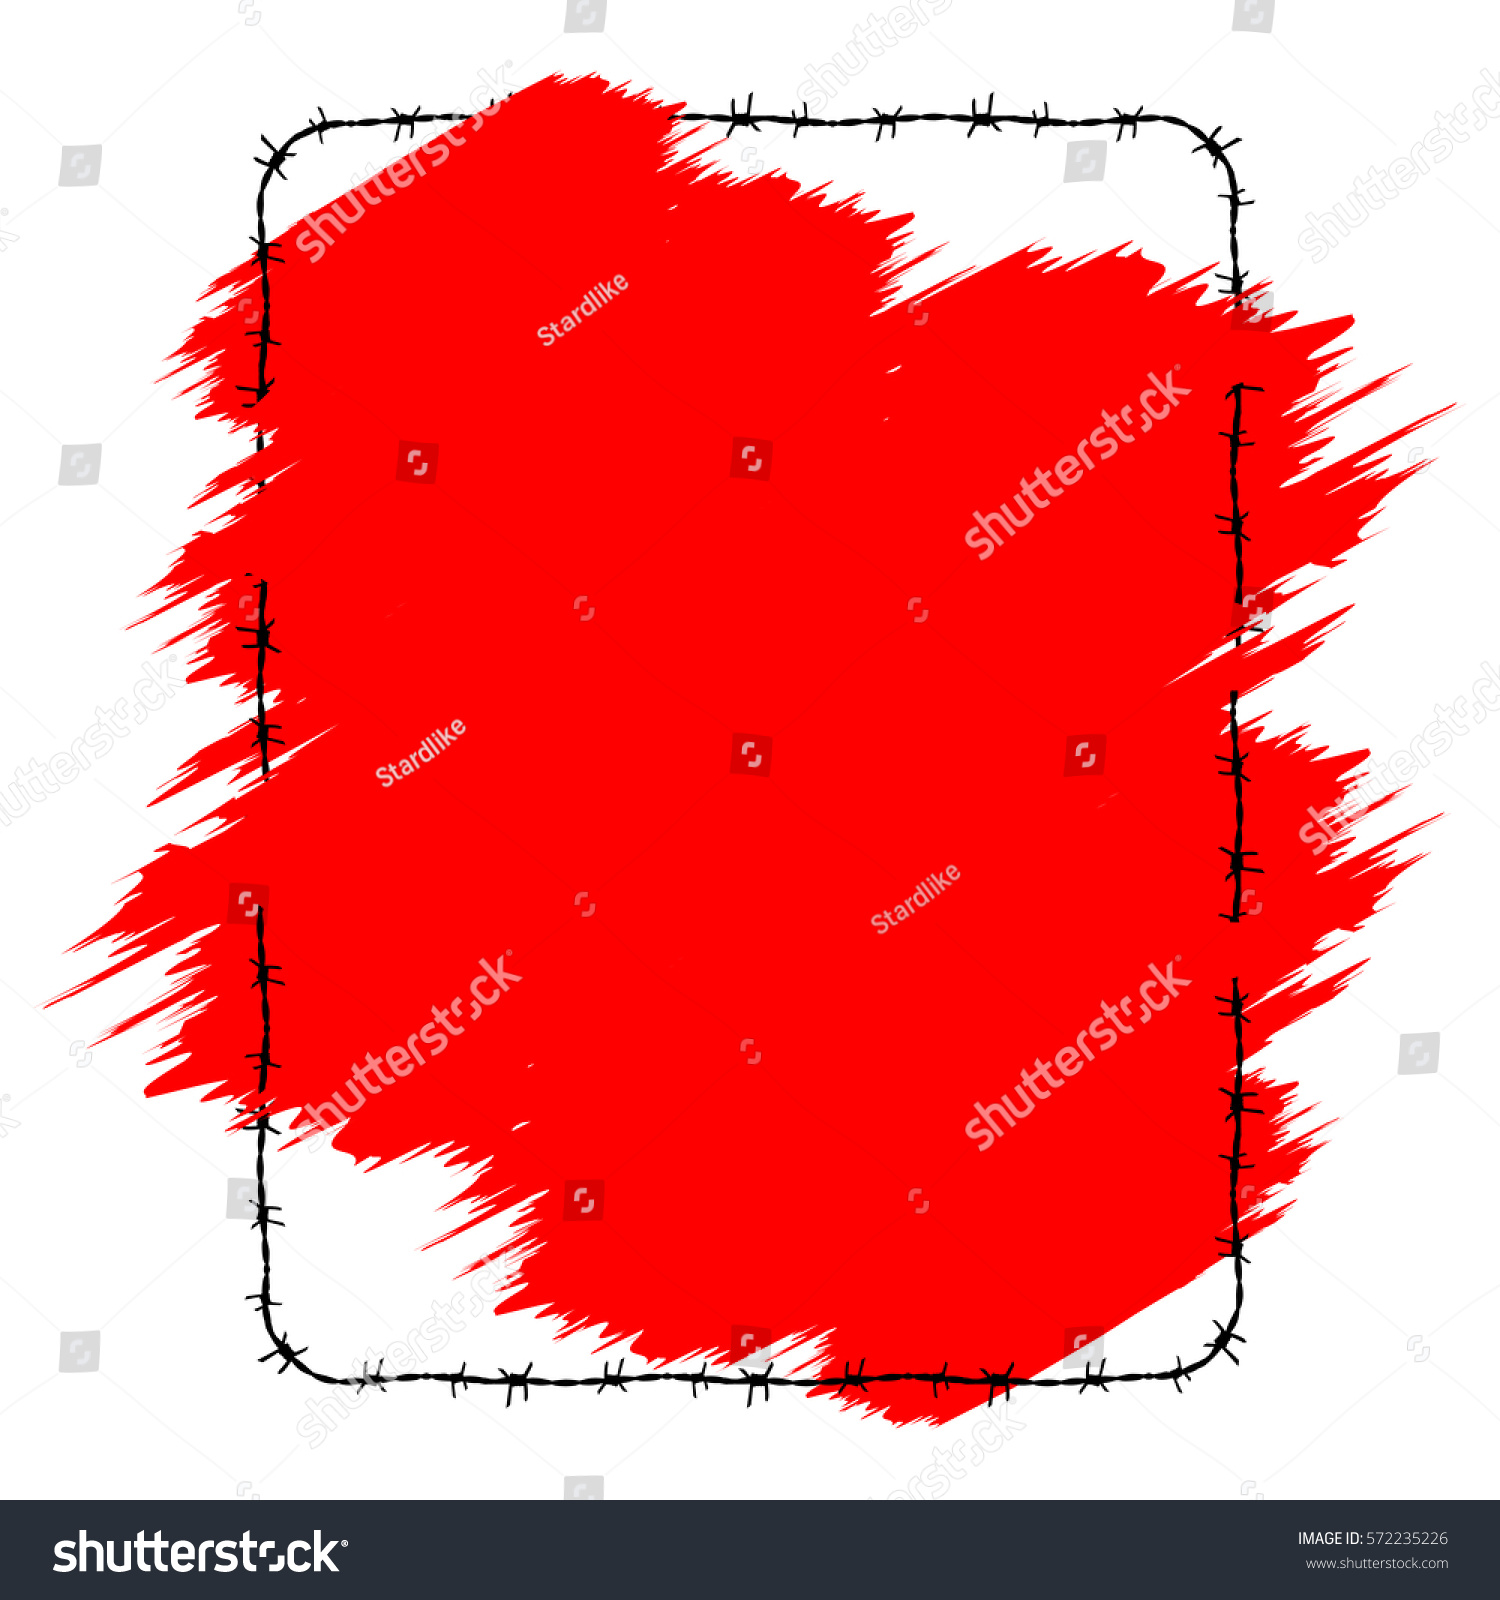 Barbed wire vector brush - Frame Barbed Wire Red Brush Stroke Element Vector